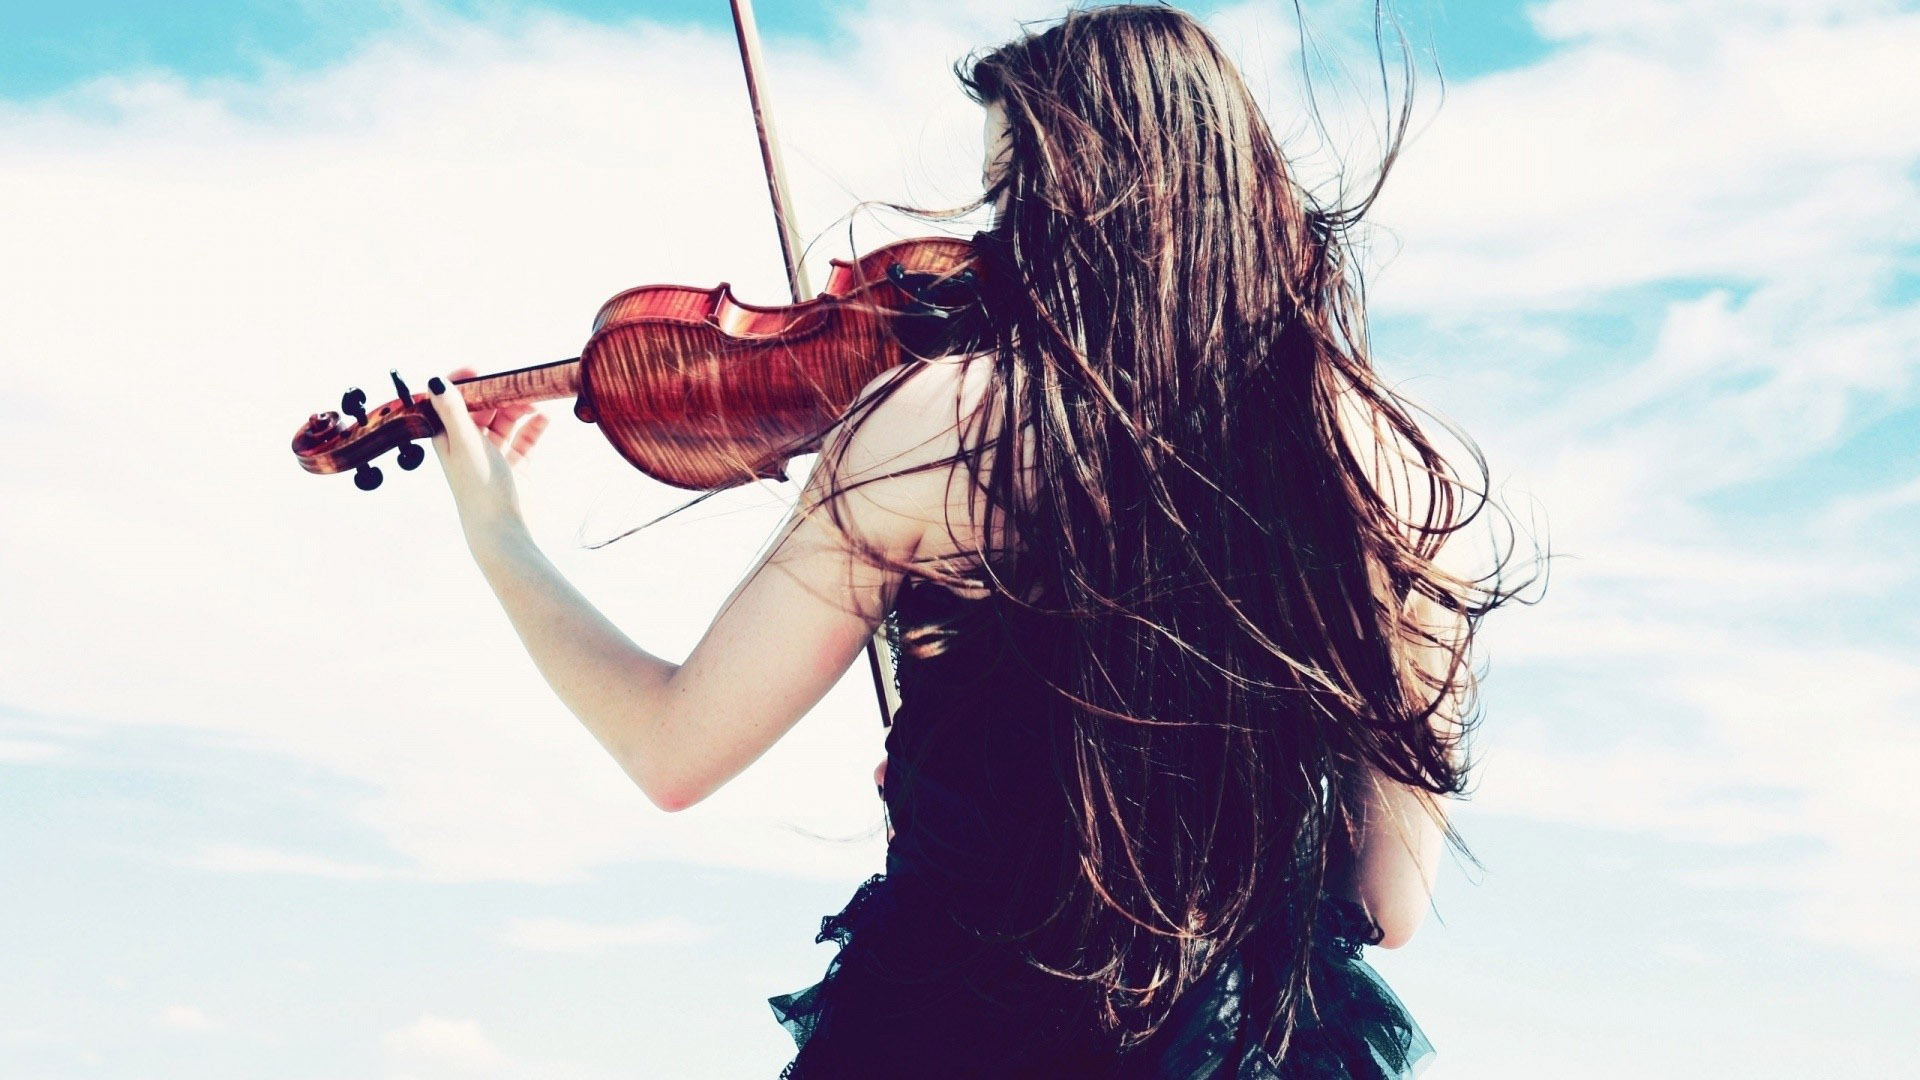 Related Wallpapers. Violinist ...